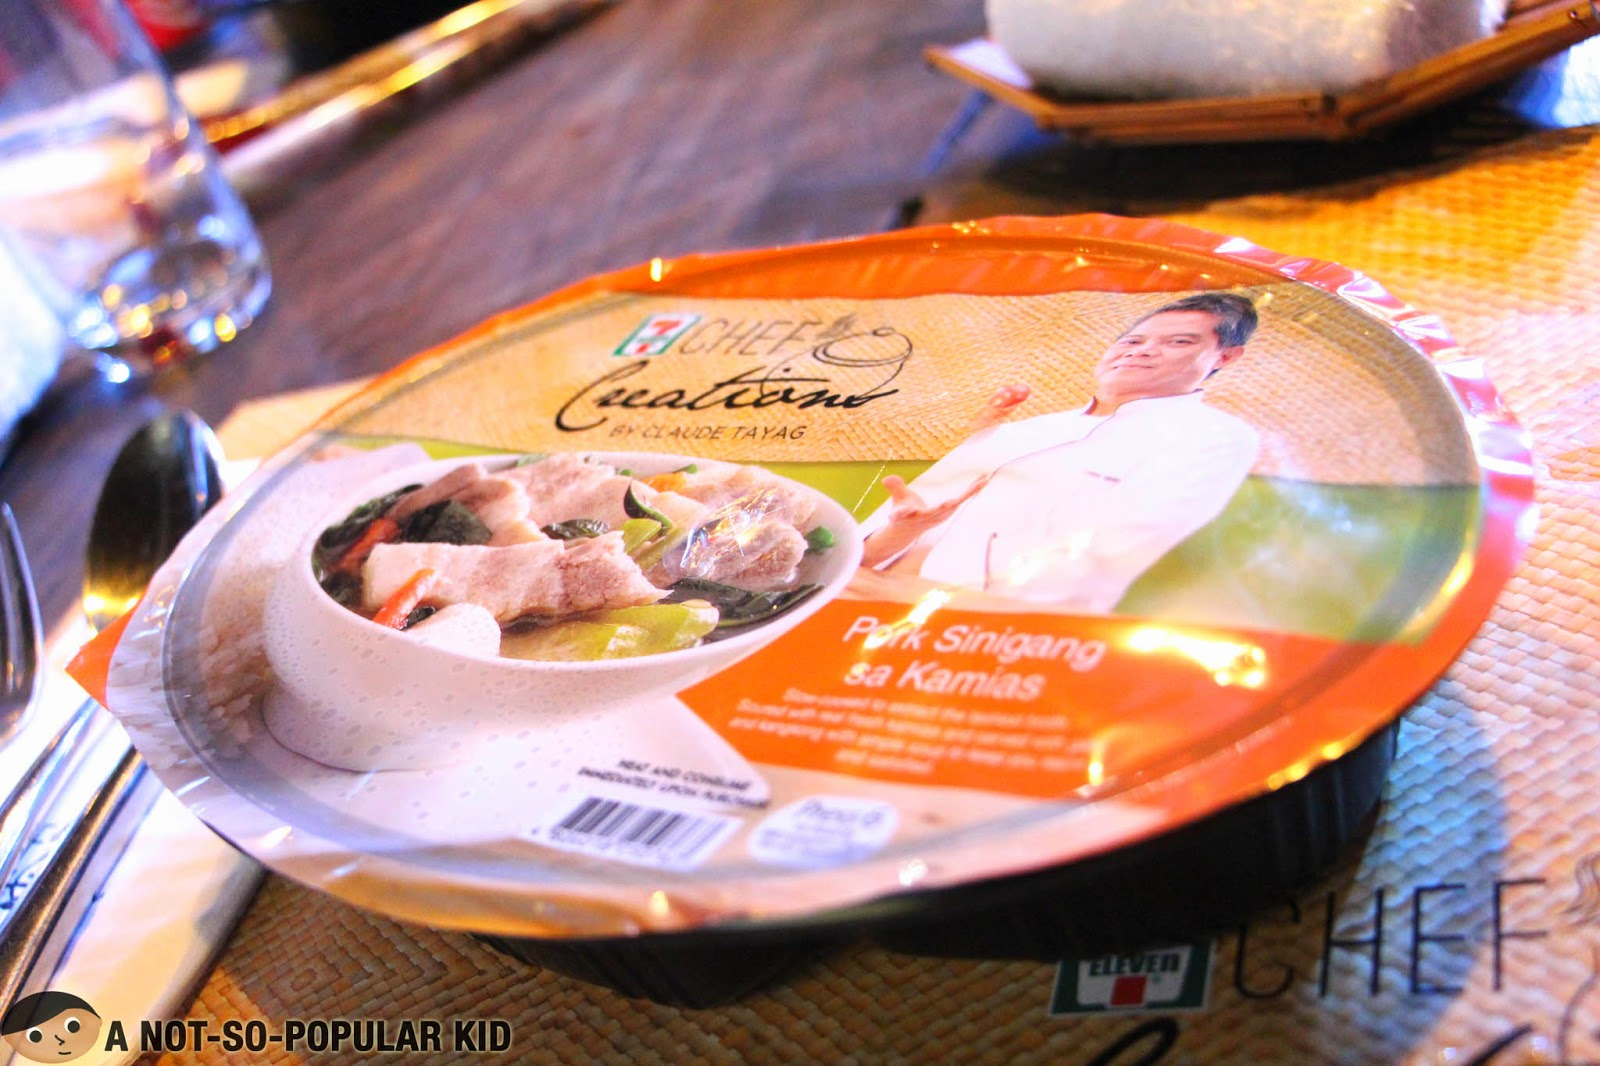 The Chef Creations - Pork Sinigang sa Kamias